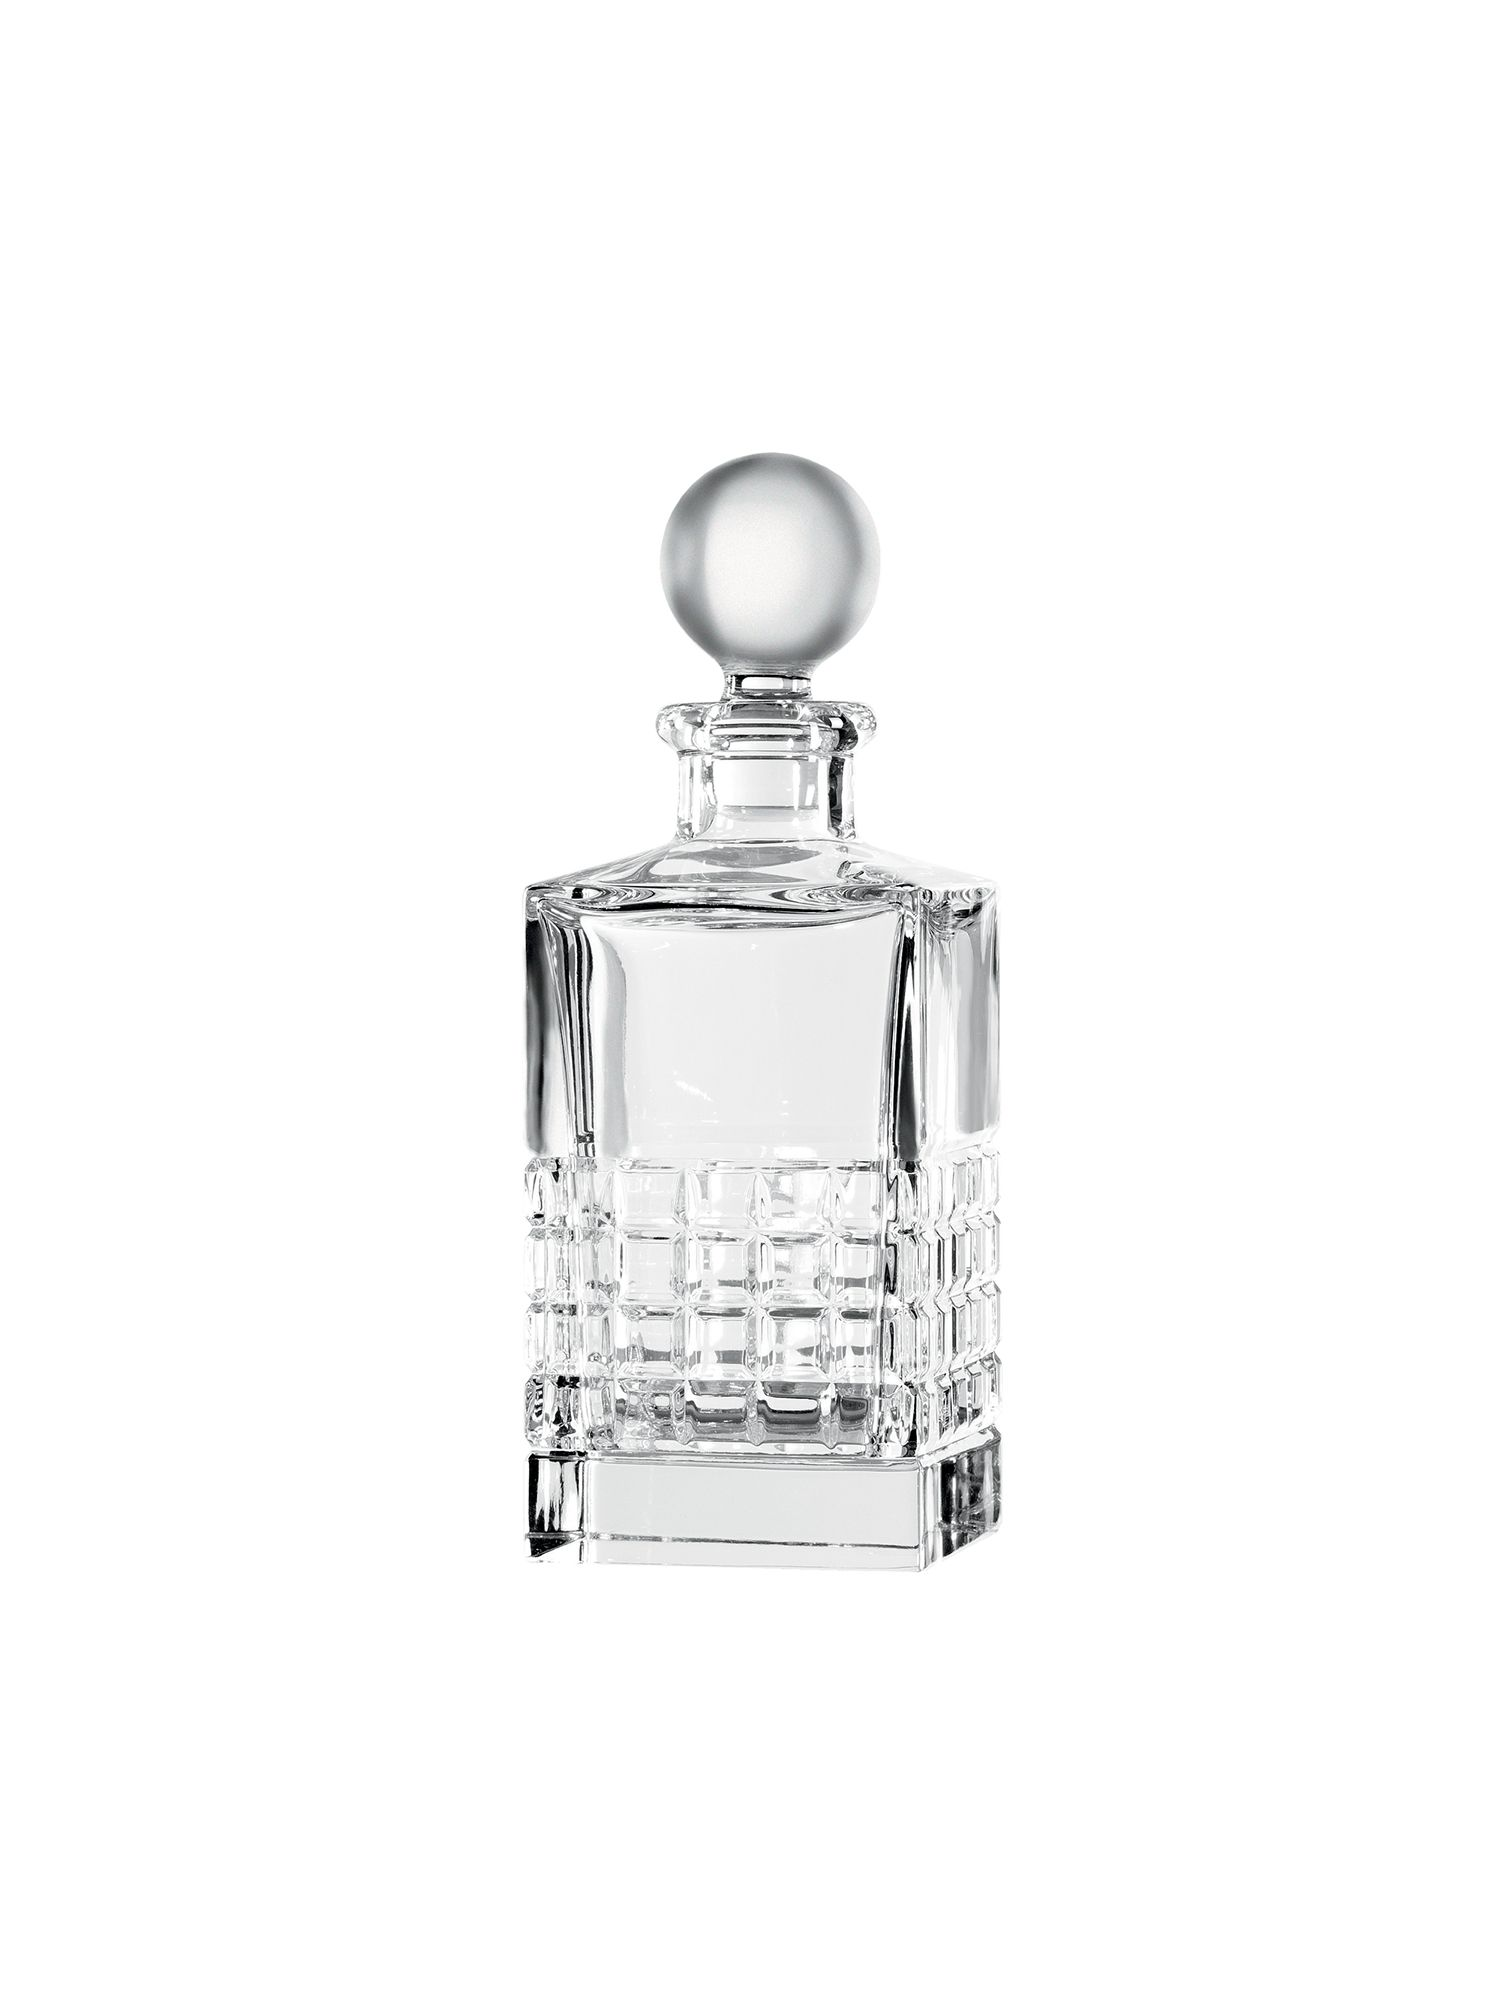 London square crystal decanter and stopper